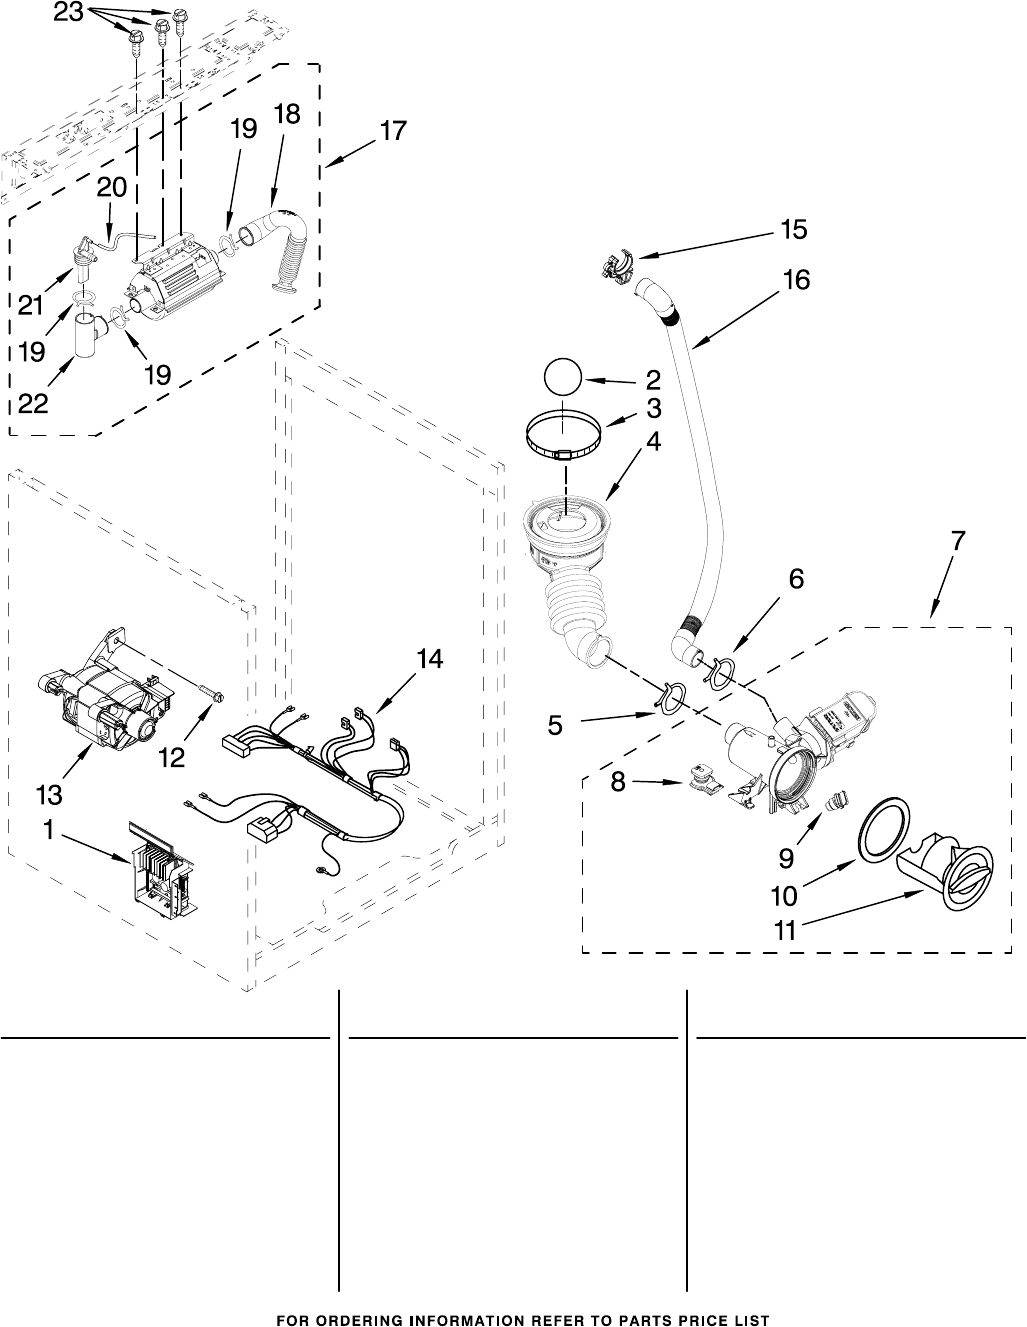 Whirlpool Wfw9500tc01 Users Manual W10158196a Wiring Schematics Steamer Pump And Motor Parts